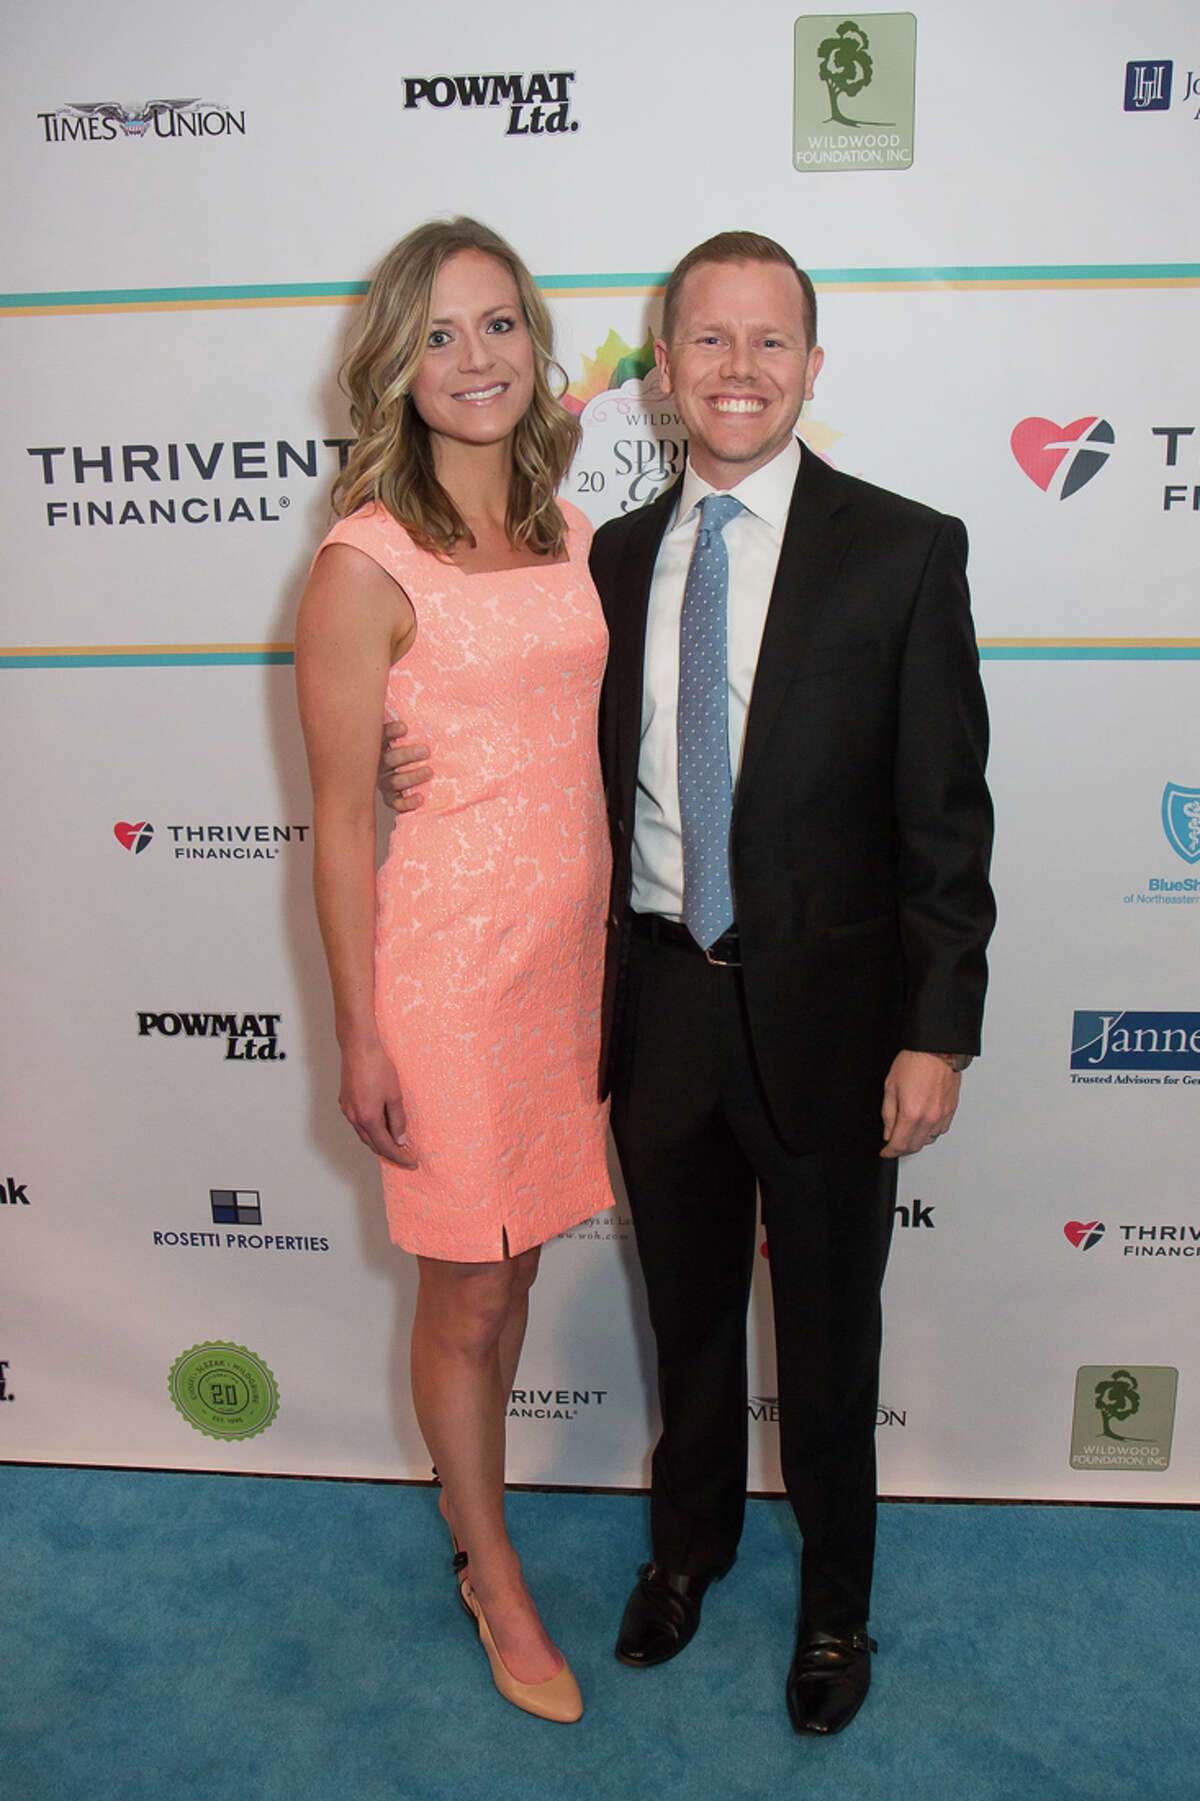 Were You Seen at the Wildwood Foundation's Spring Gala at the Hall of Springs in Saratoga Springs on Friday, April 29, 2016?